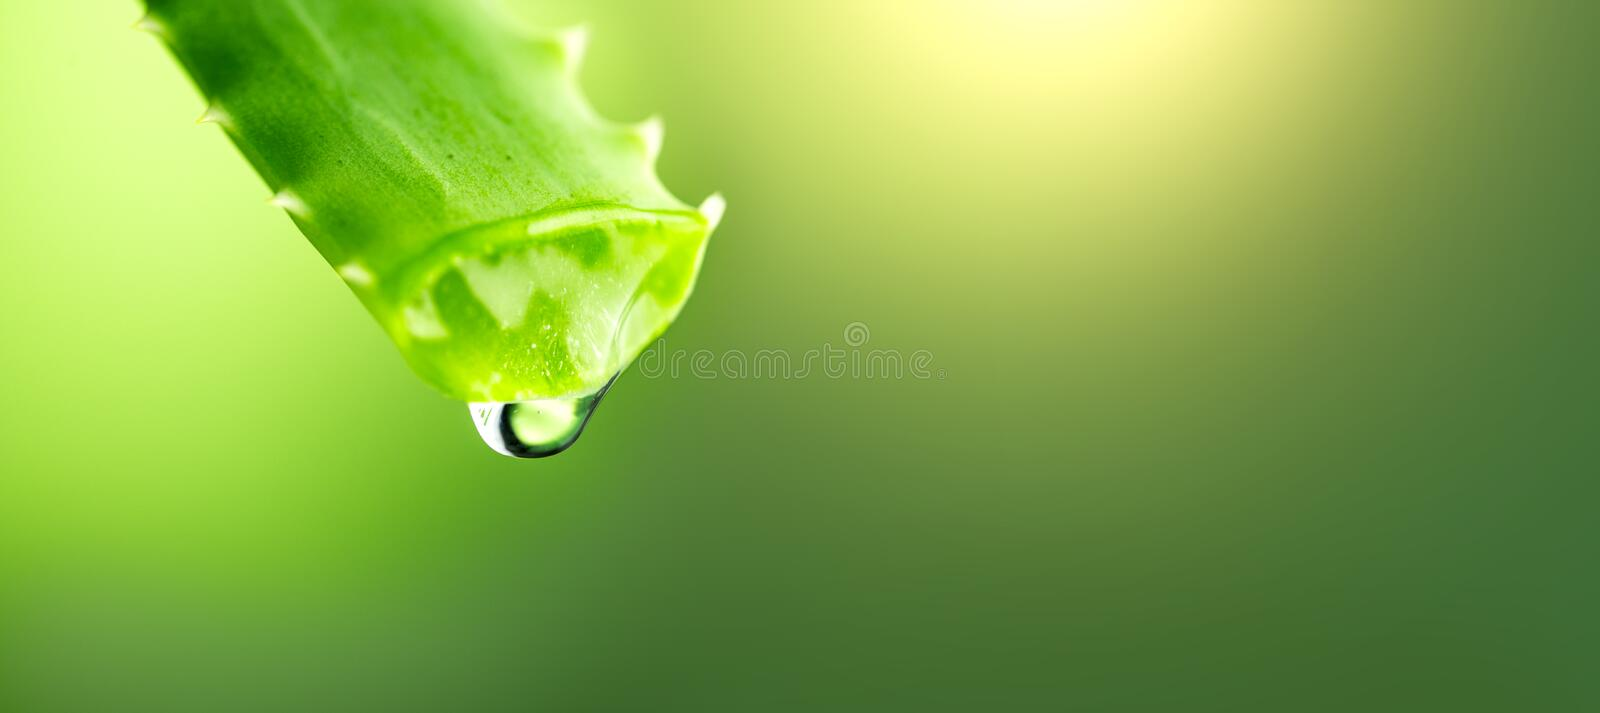 Aloe Vera gel dripping from Aloe green leaf closeup. Skincare concept. Drop of Aloevera fresh juice macro shot royalty free stock photos